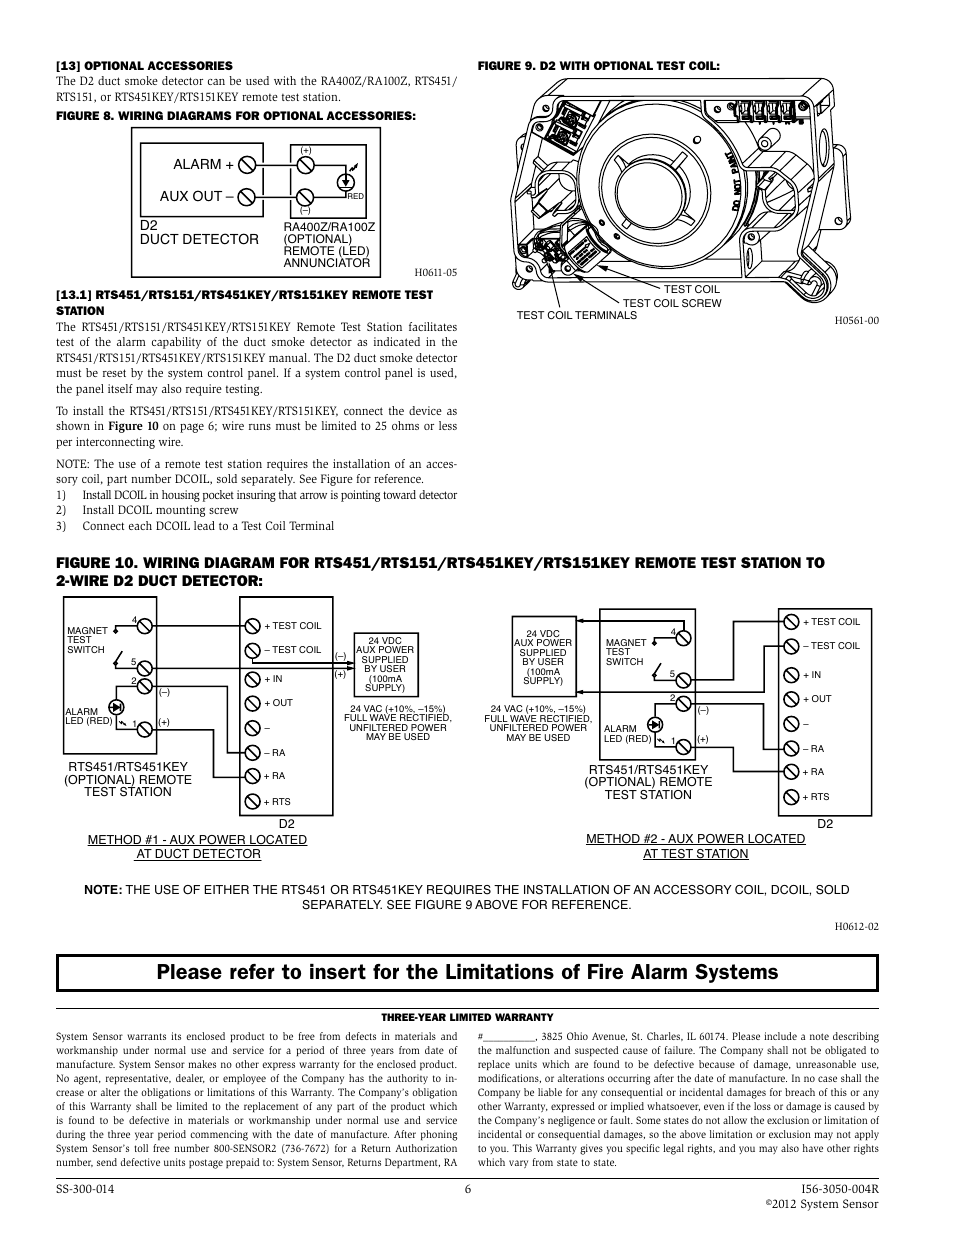 system sensor d2 page6 annunciator wiring diagram friendship bracelet diagrams \u2022 free 5R55E Transmission Wiring Diagram at panicattacktreatment.co